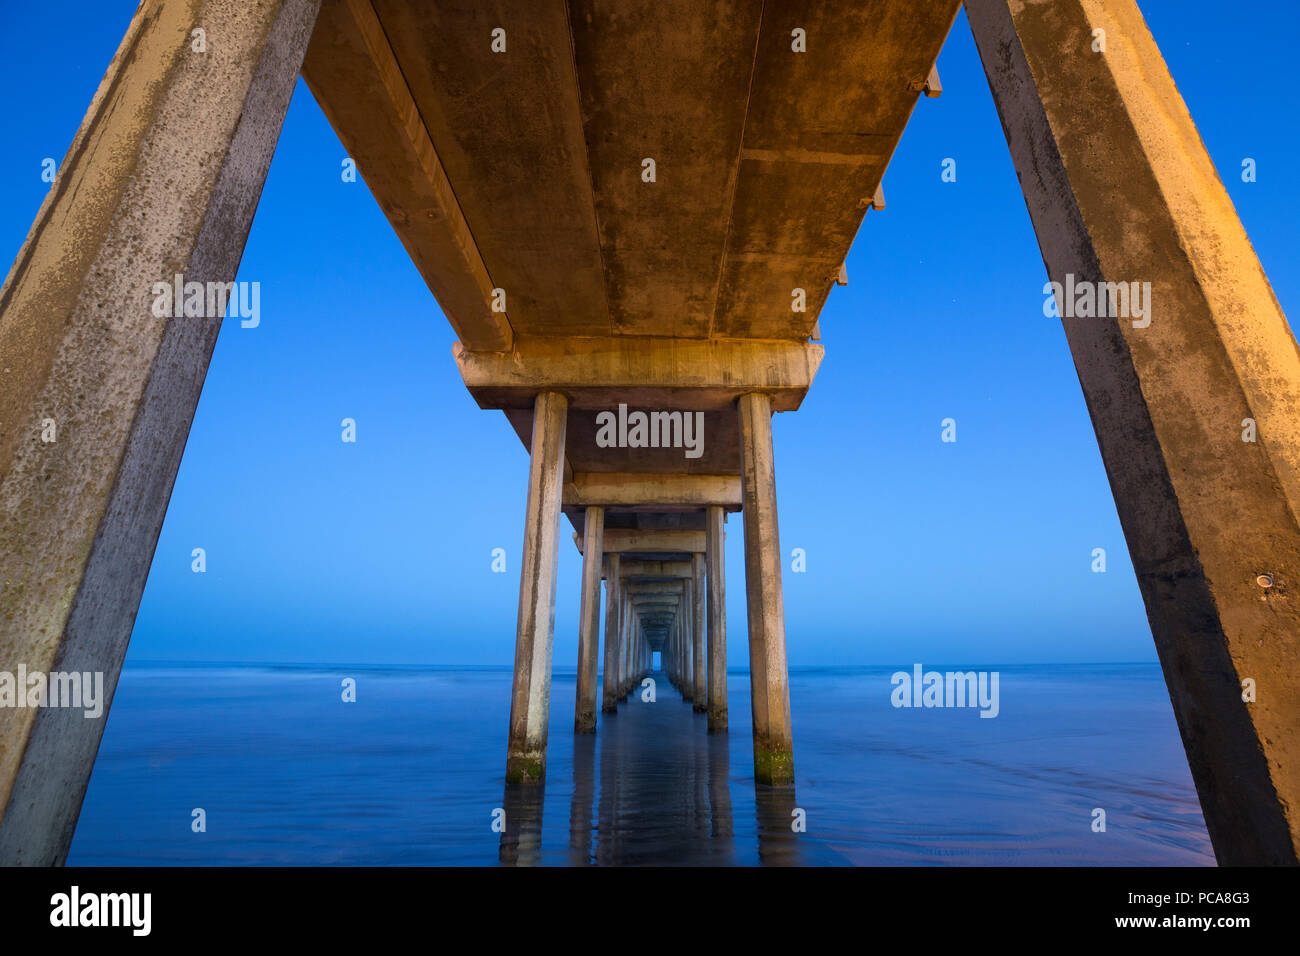 Scripps Institute of Oceanography pier at dawn. - Stock Image